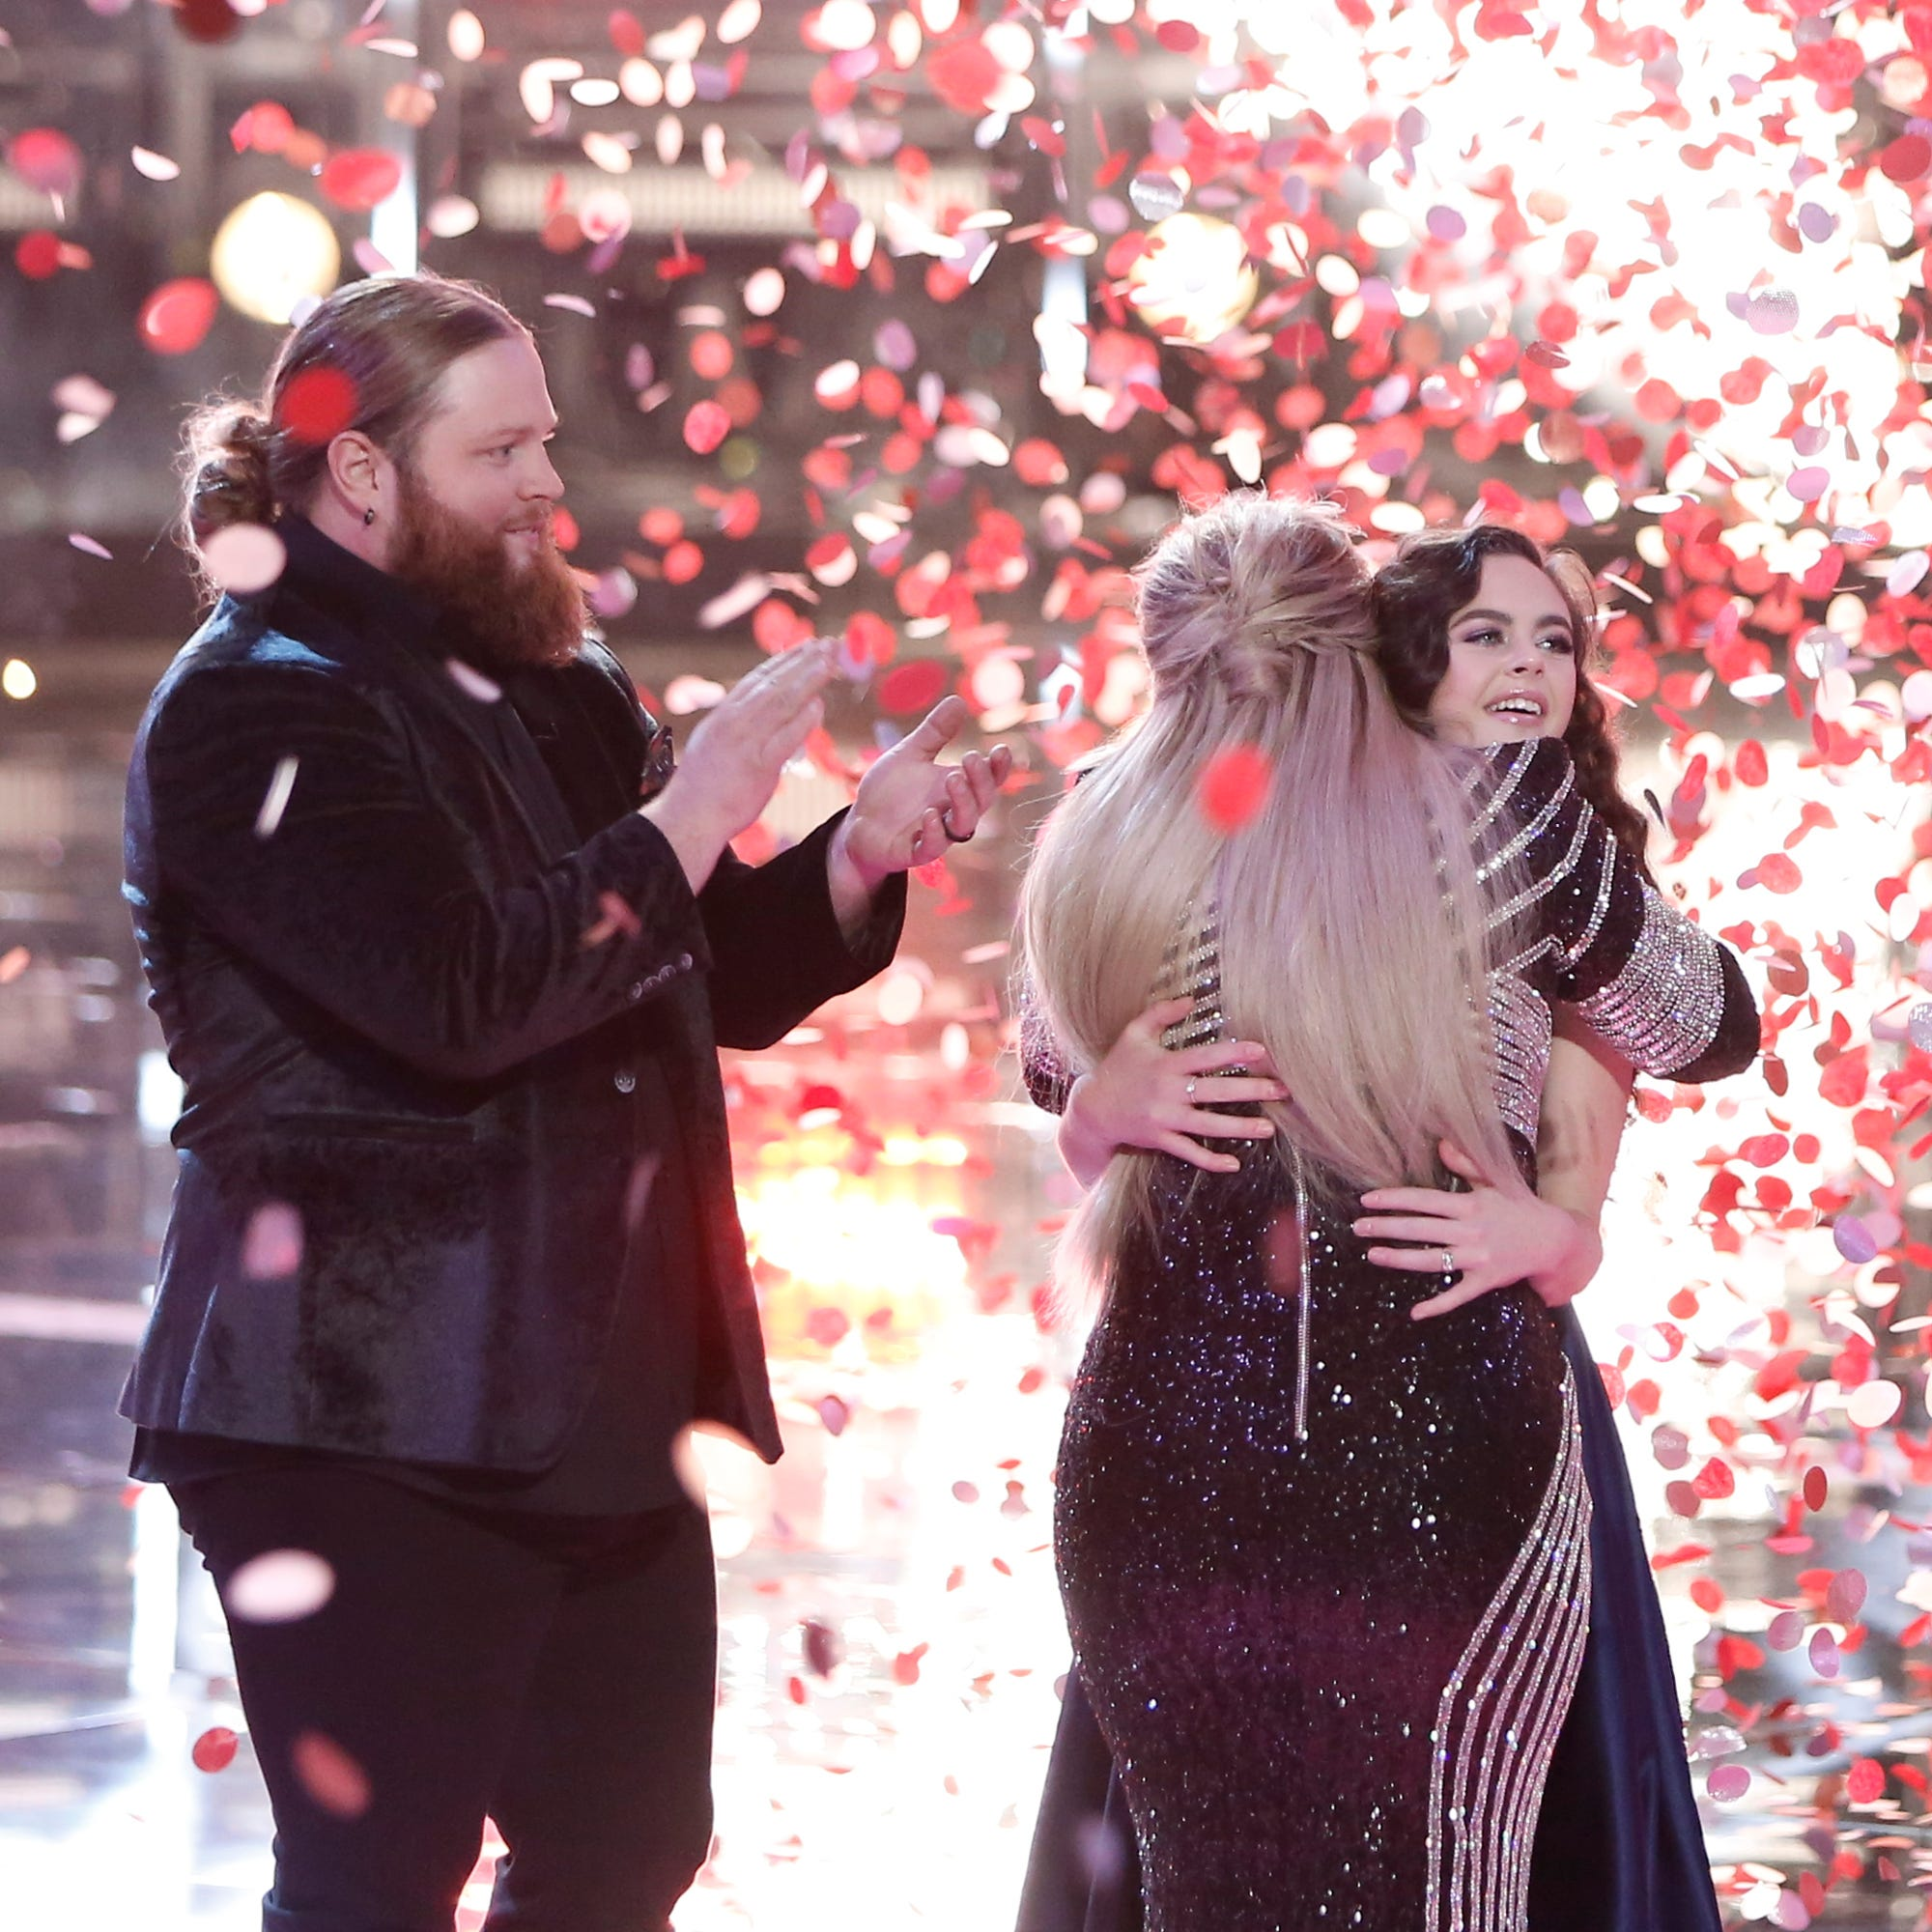 Wisconsin's Chris Kroeze comes in second place on 'The Voice,' Chevel Shepherd wins